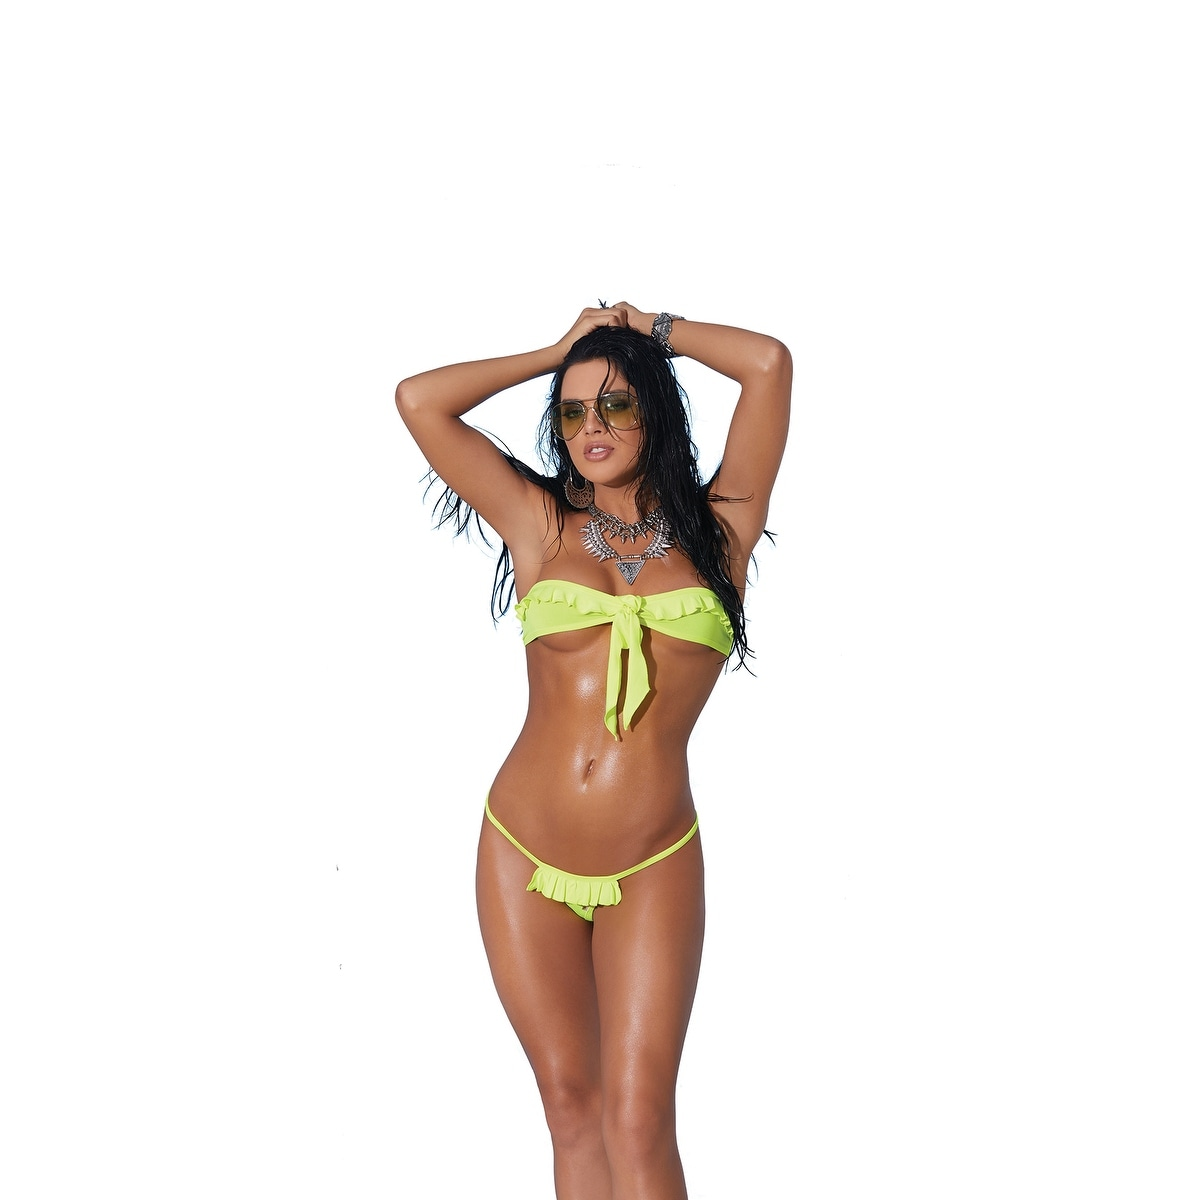 874f5f976 Lycra bandeau top and matching g-string with ruffle trim - Color -  Chartreuse - Size - One Size